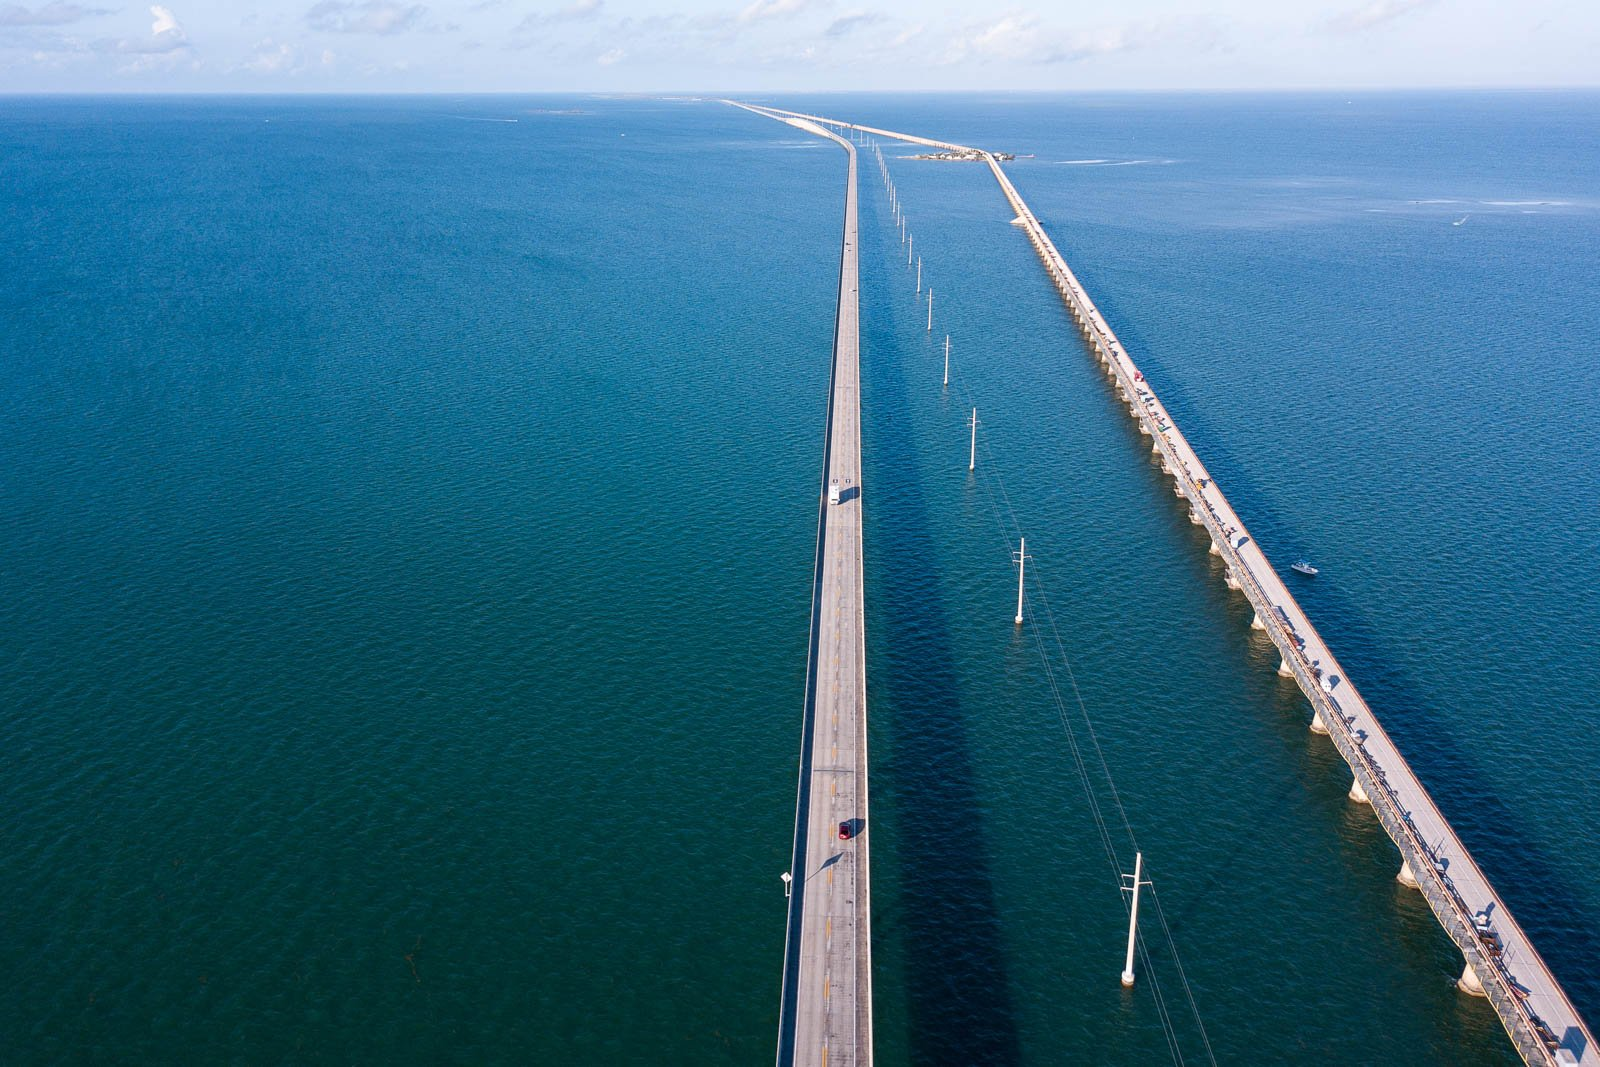 Take the Seven Mile Bridge above beautiful ocean water on your way to the Florida Keys. Wondering where to go in Florida? Not anymore, it is one of the most fun things to do in Florida.